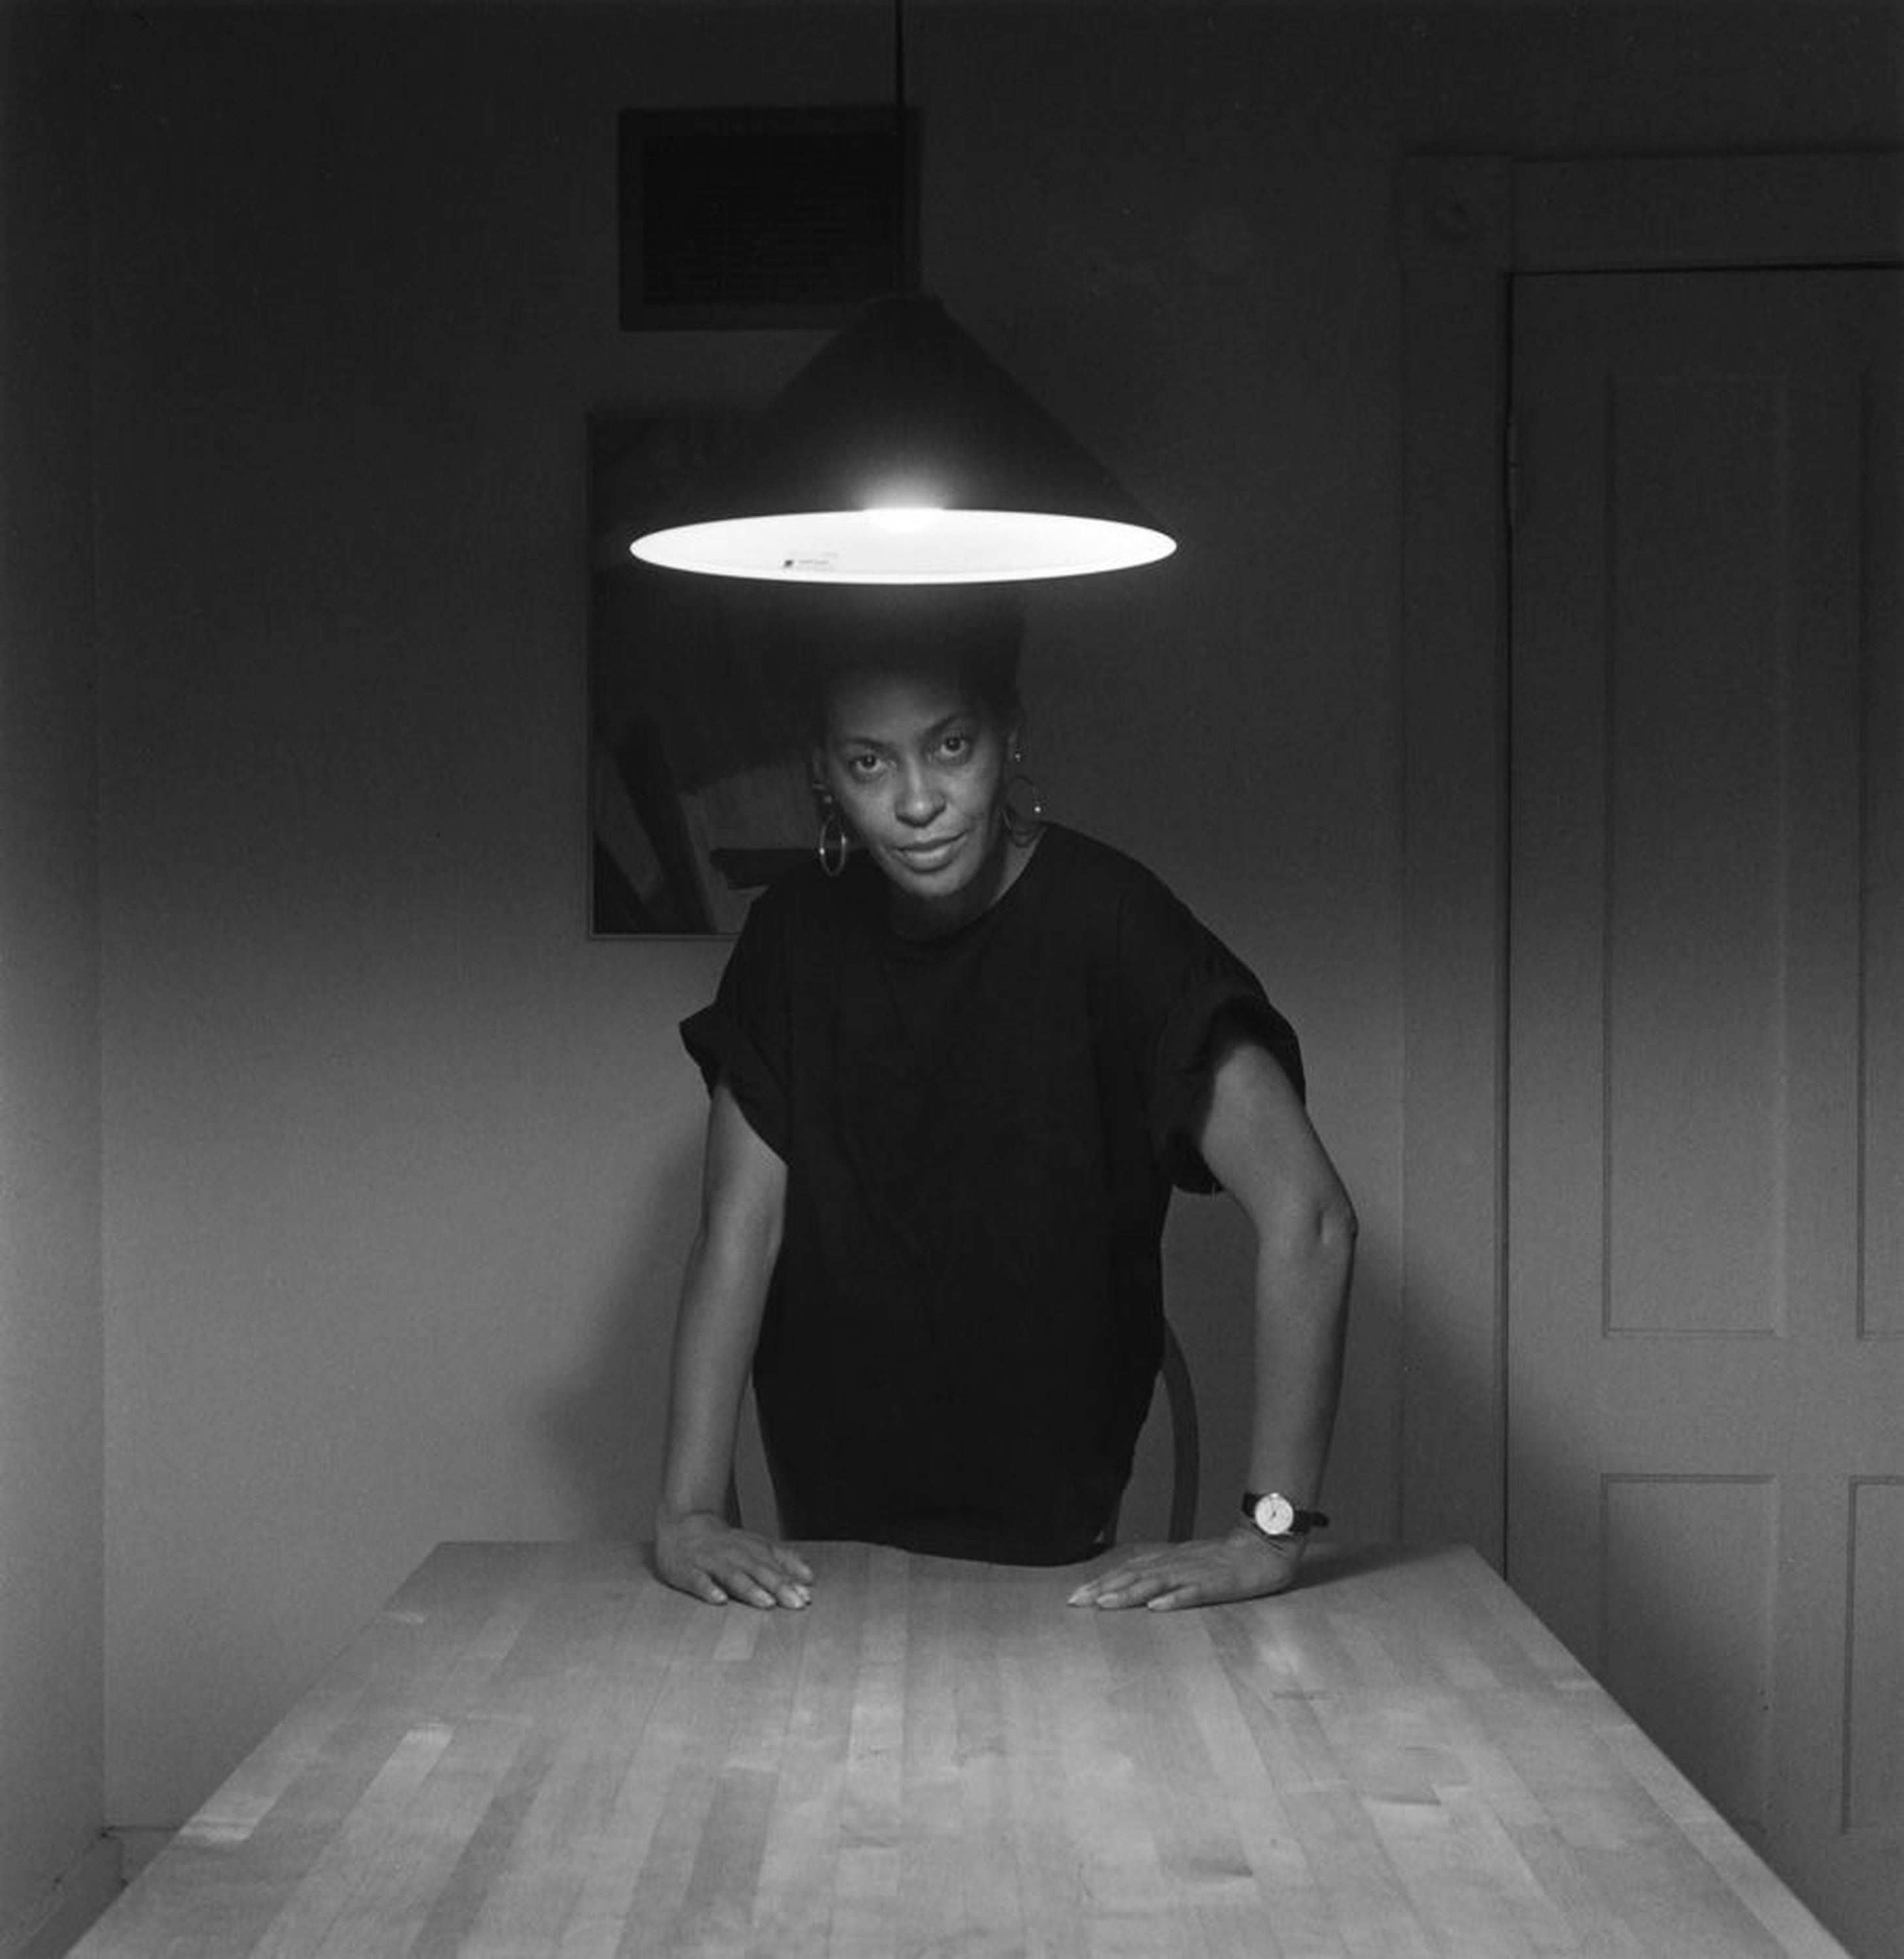 Carrie Mae Weems Self Portrait The Kitchen Table Series Artist